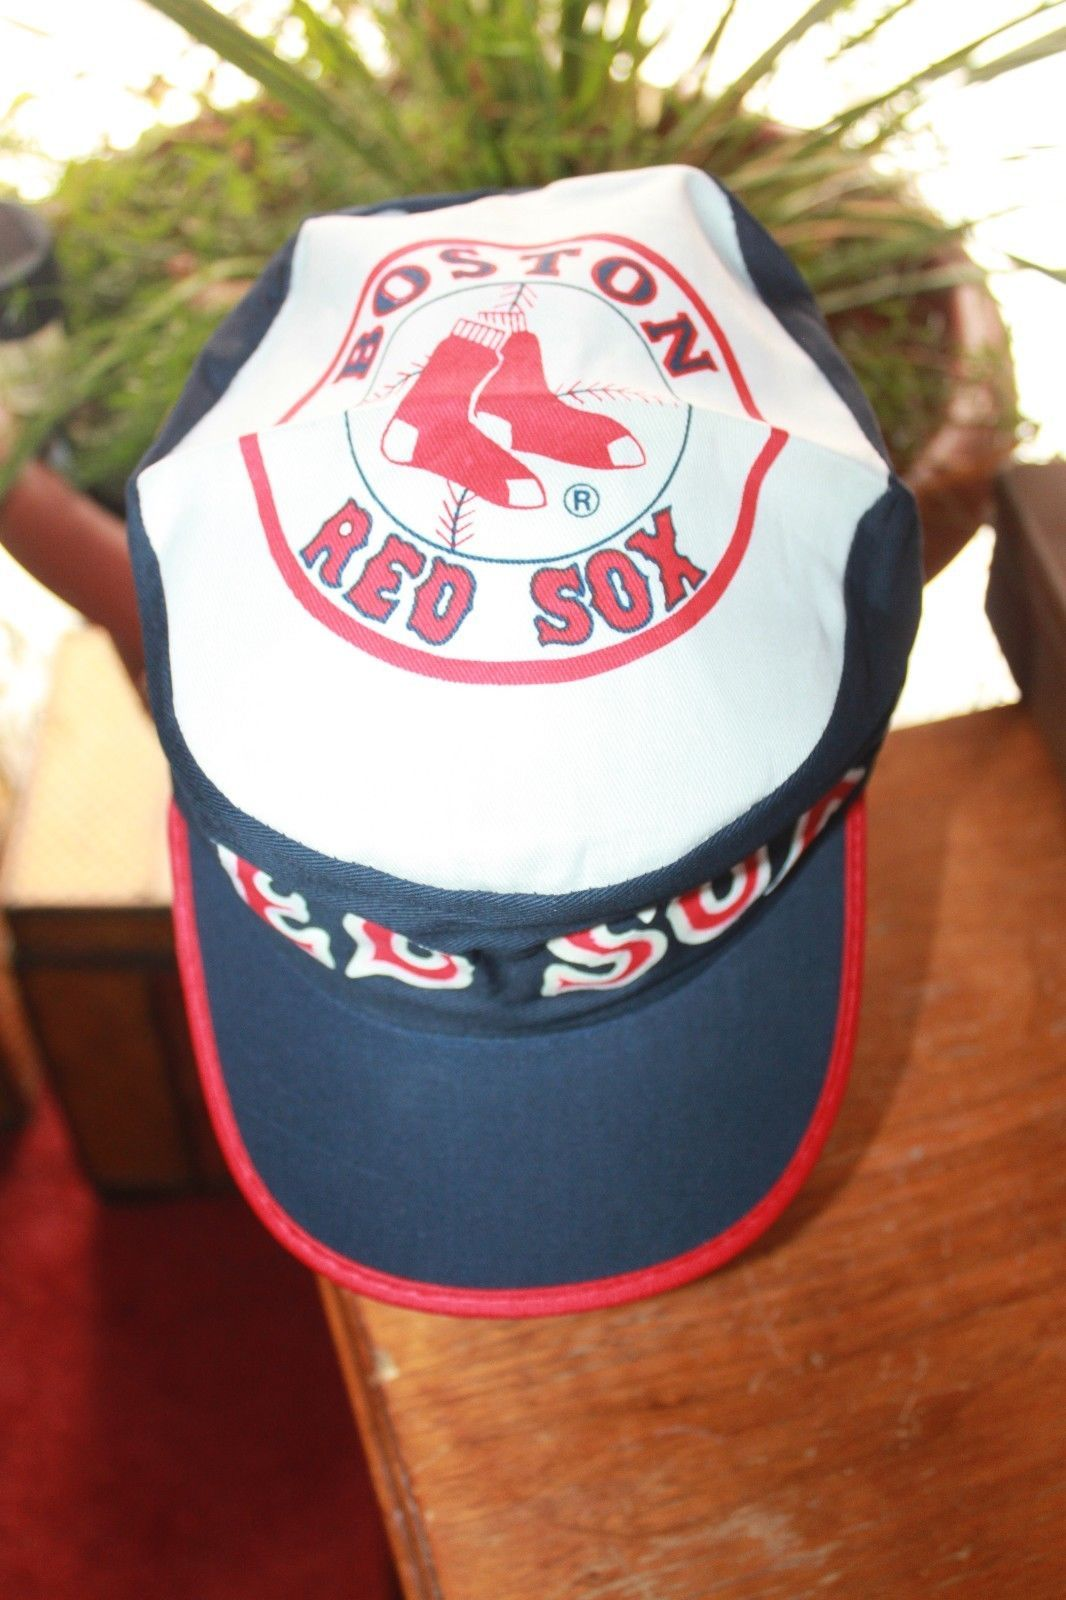 0c74583cb5e Boston Red Sox Hat MLB Painters Cap Vintage Rare New Old Stock From the 80s  please retweet